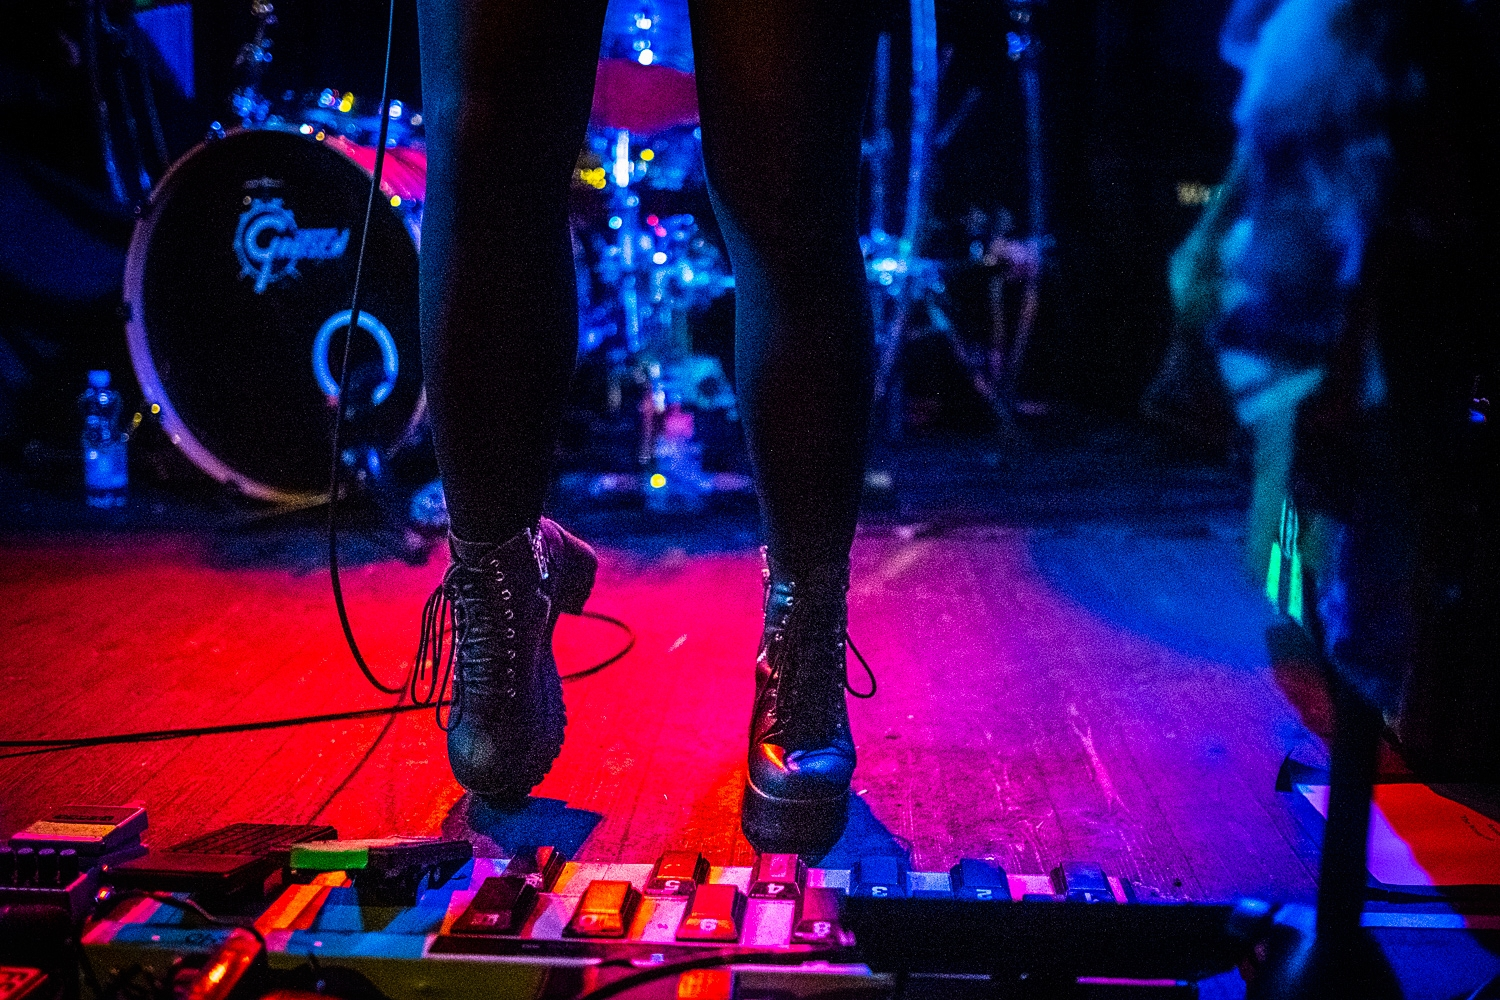 20180820-024-The-Joy-Formidable-@-Blue-Shell-Köln-col-Cred_Michael_Lamertz_@indie.and_.more_.jpg